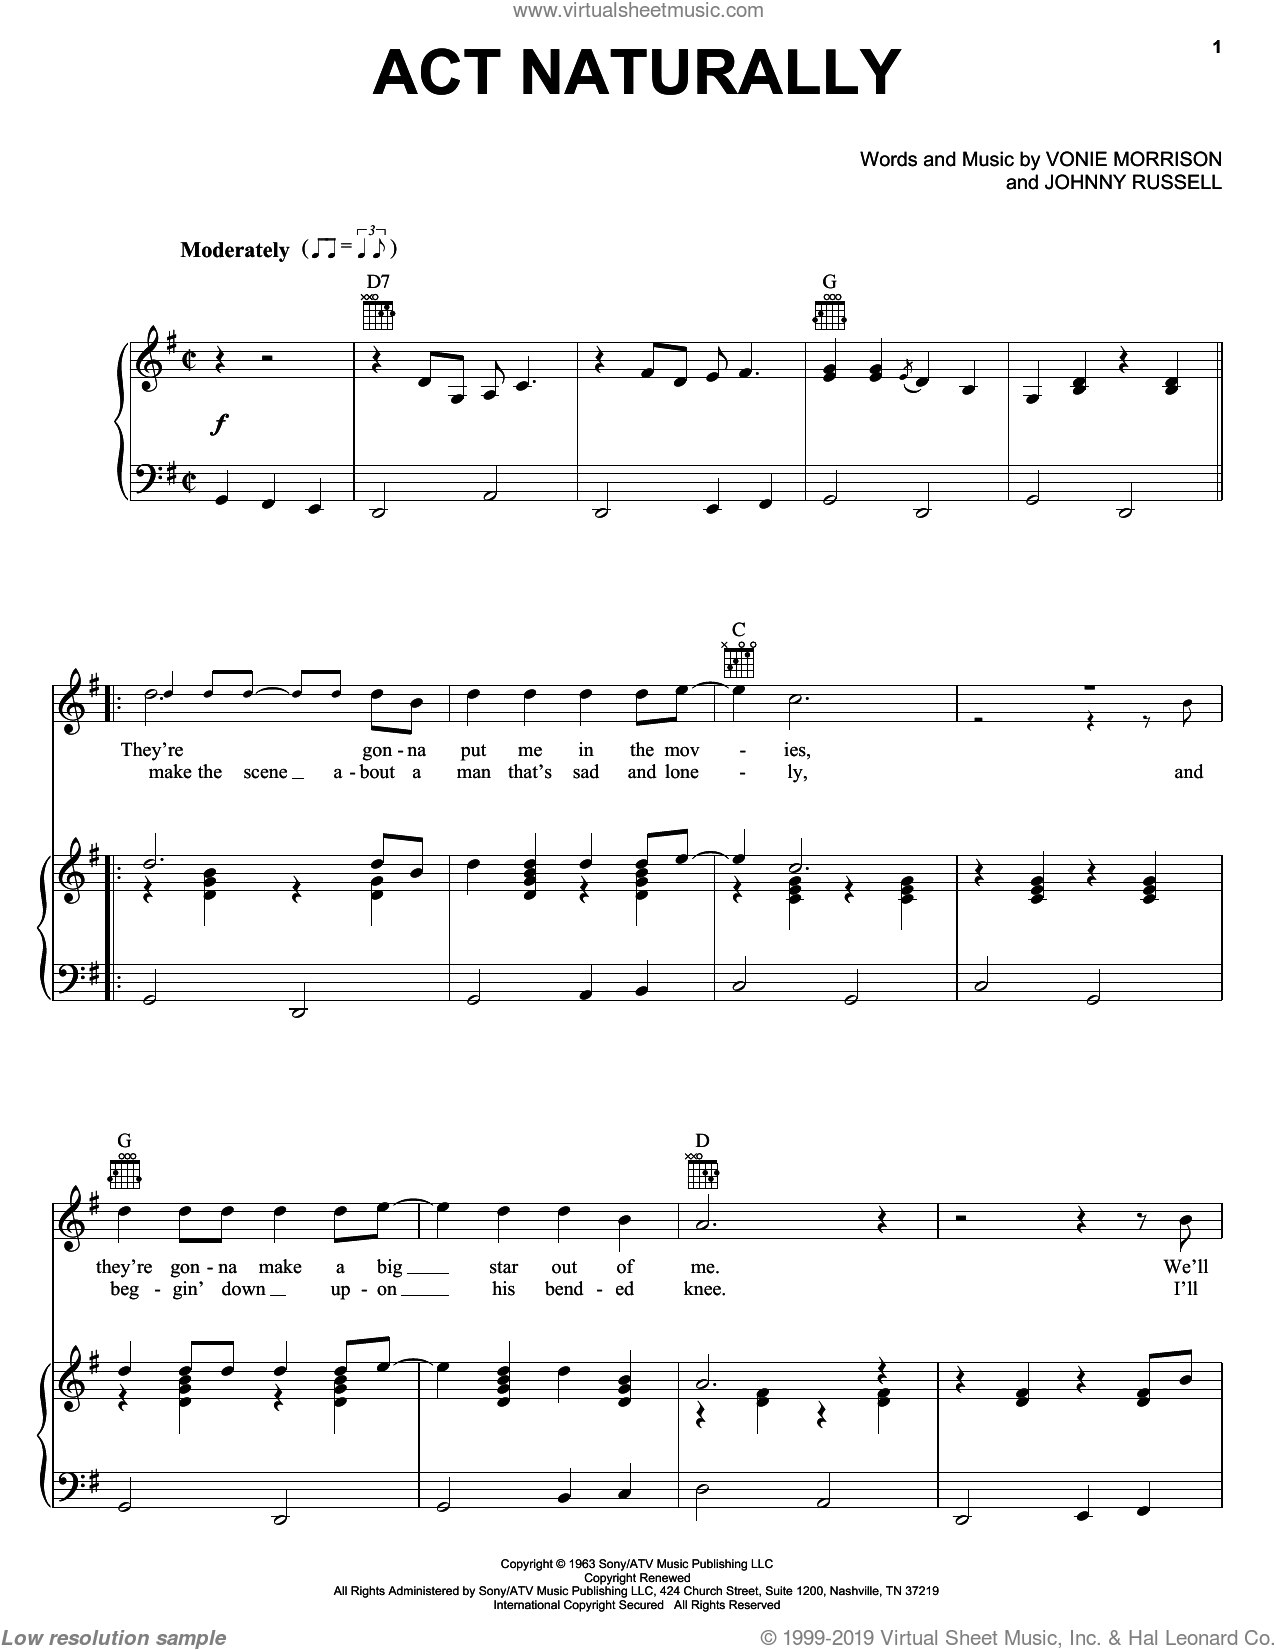 Act Naturally sheet music for voice, piano or guitar by Vonie Morrison